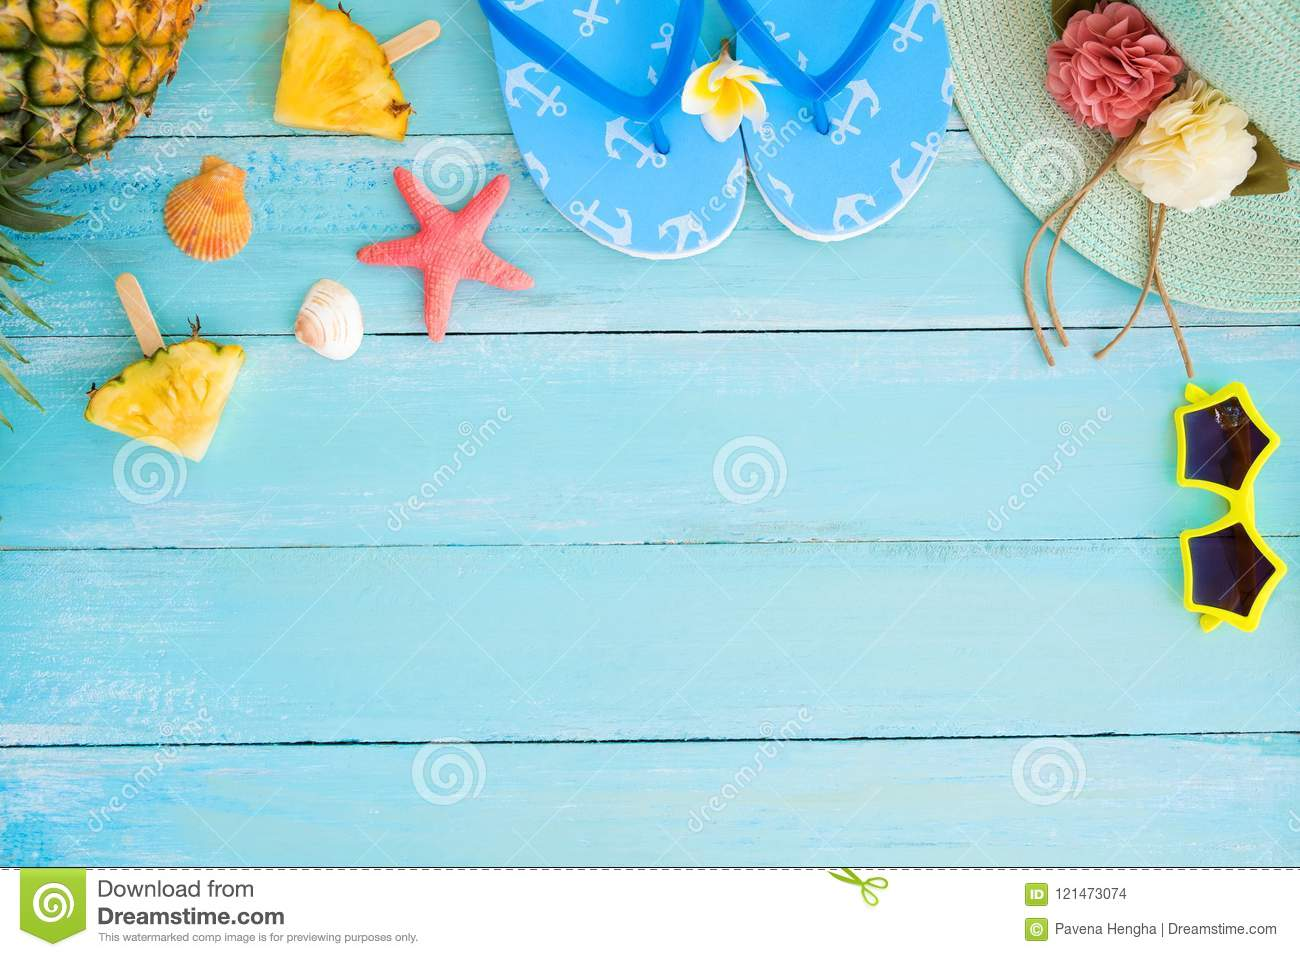 Pineapple slices, shells, starfish, slippers, straw hat and sunglasses on wood plank blue color.